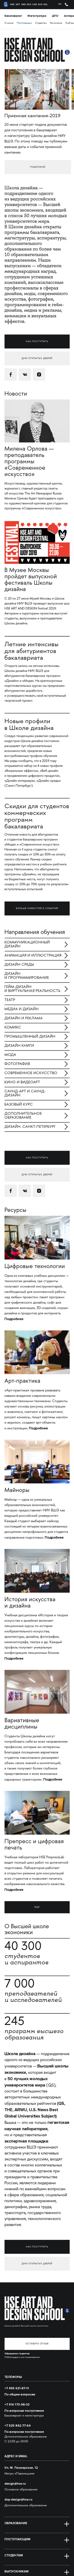 Example of Design for Jobs & Education, Education, Mobile Landing Page by design.hse.ru | Mobile Landing Page Design